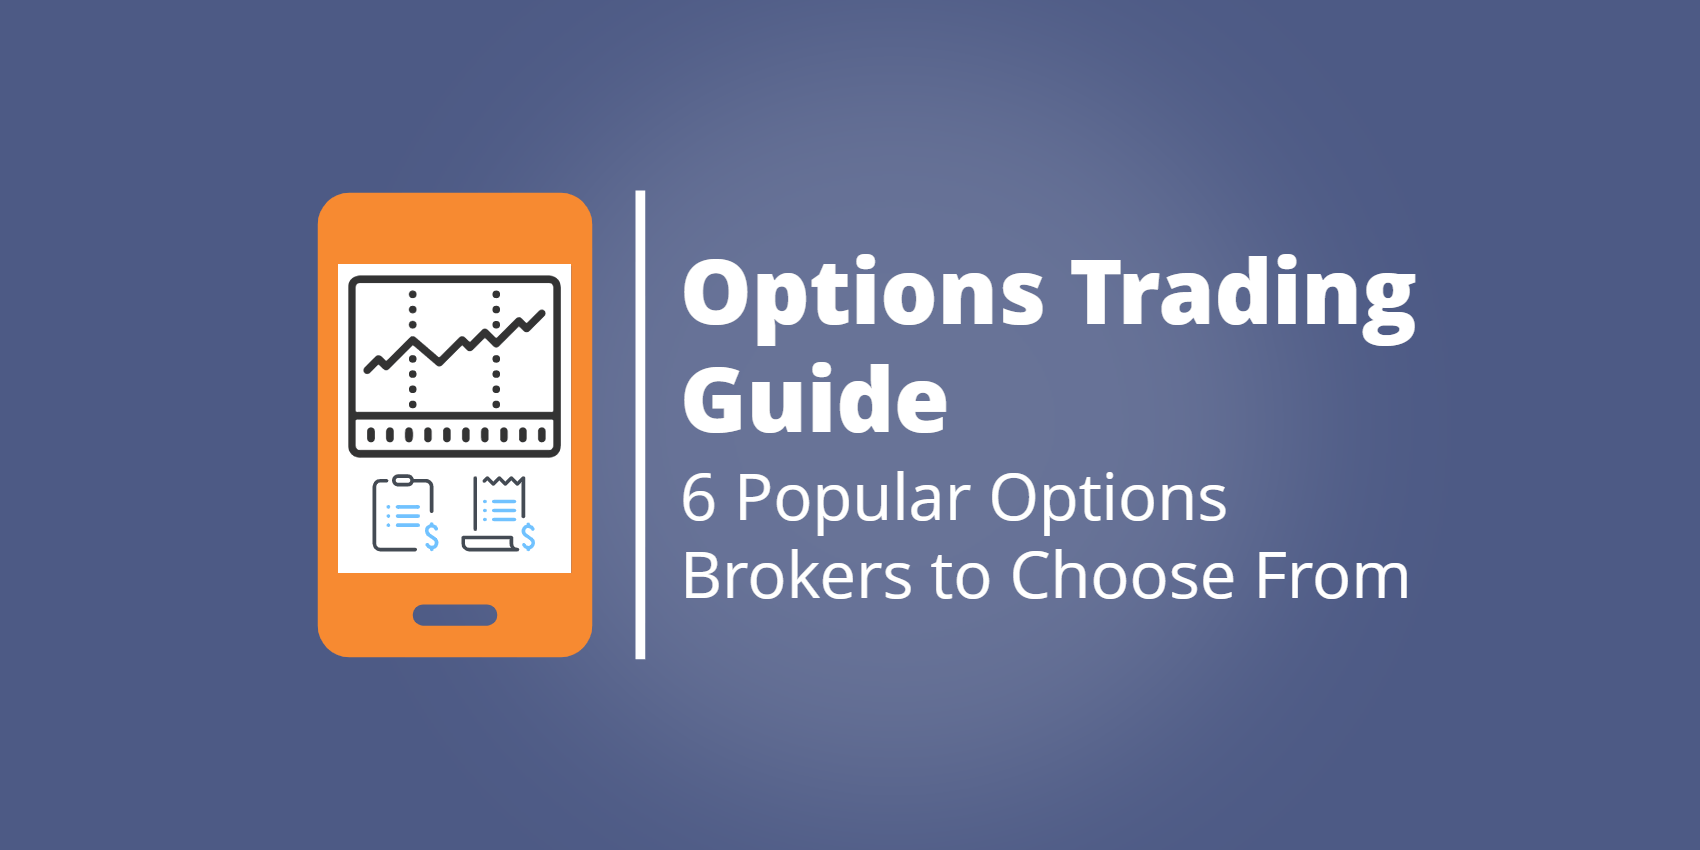 Futures Options Trading - Pros and Cons